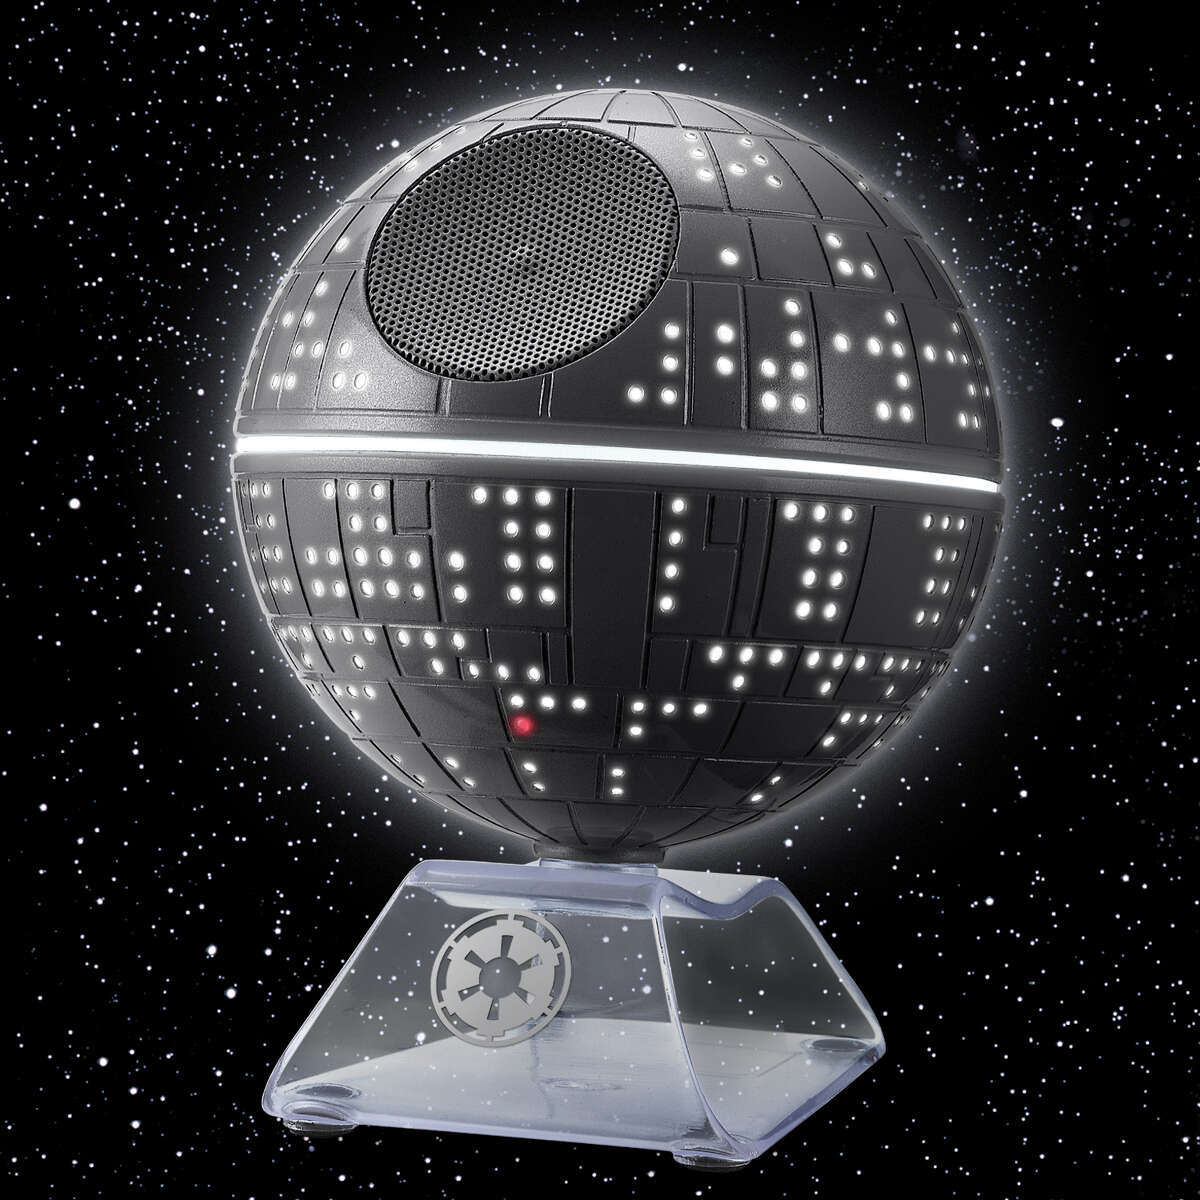 Will a new Death Star feature in the new film? Yes - 85 percent No - 22 percent